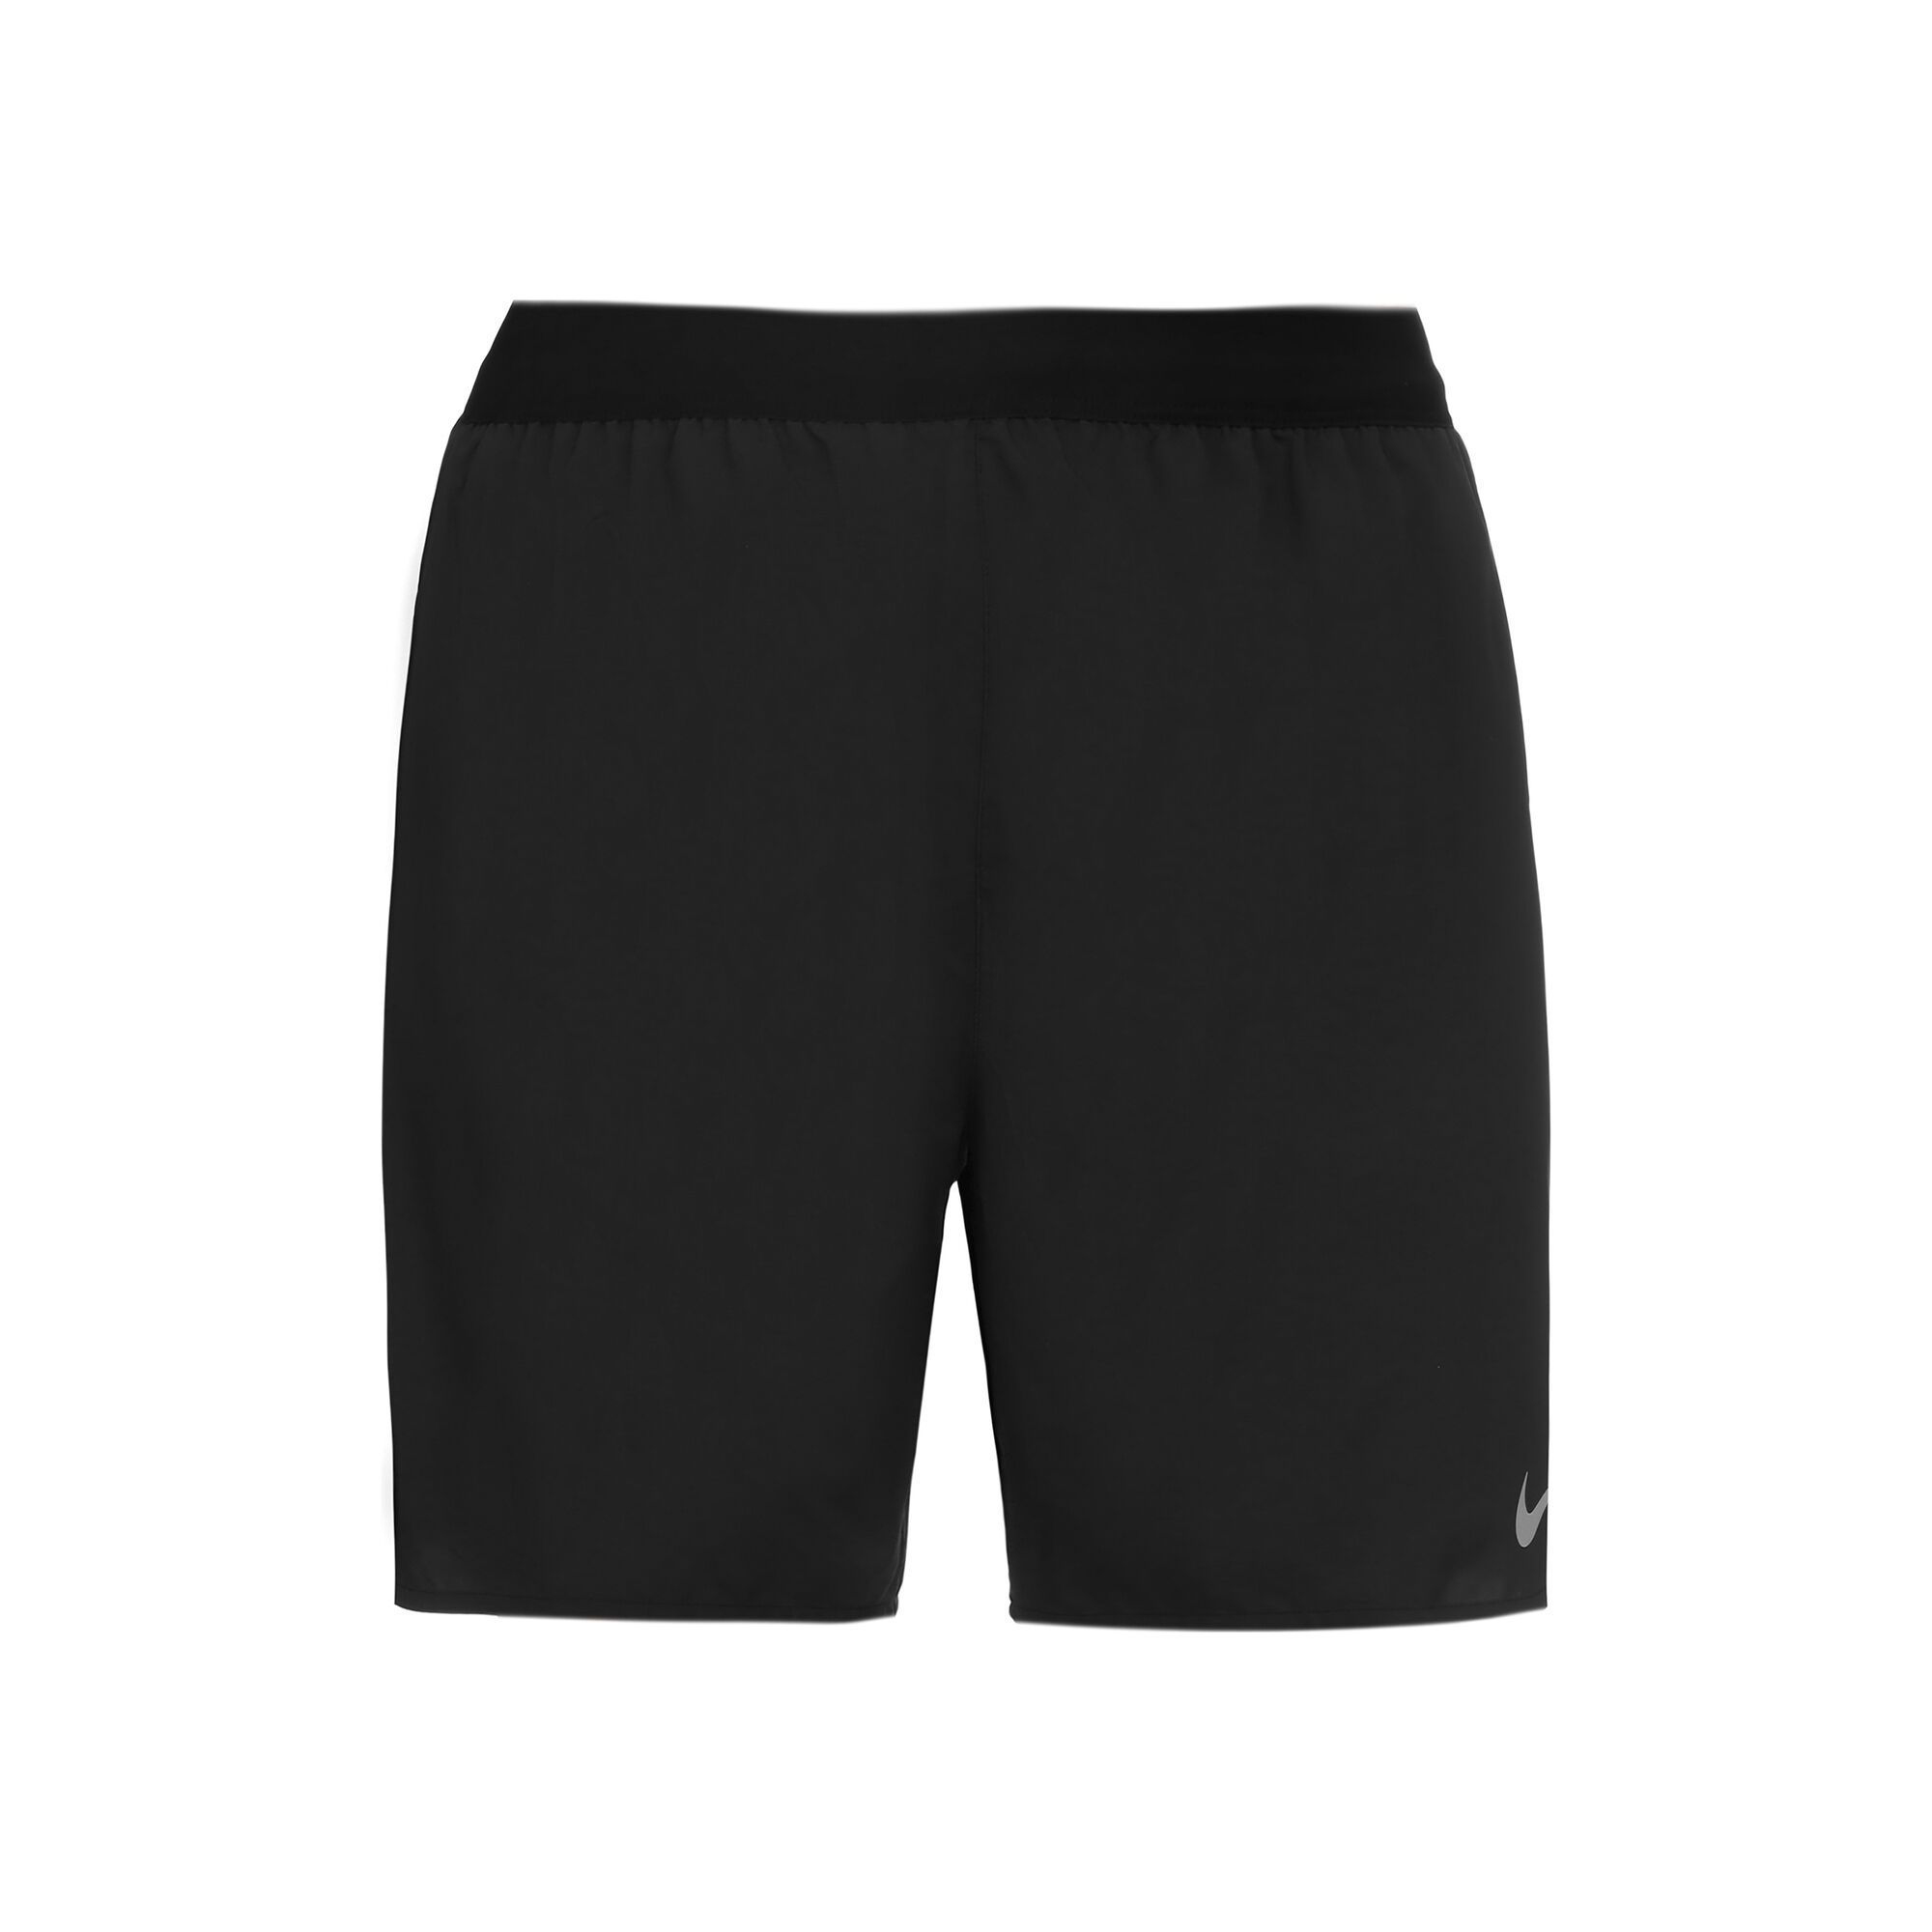 48b4b22ea99f Nike · Nike · Nike · Nike. Flex Stride Short BF 7IN Men ...